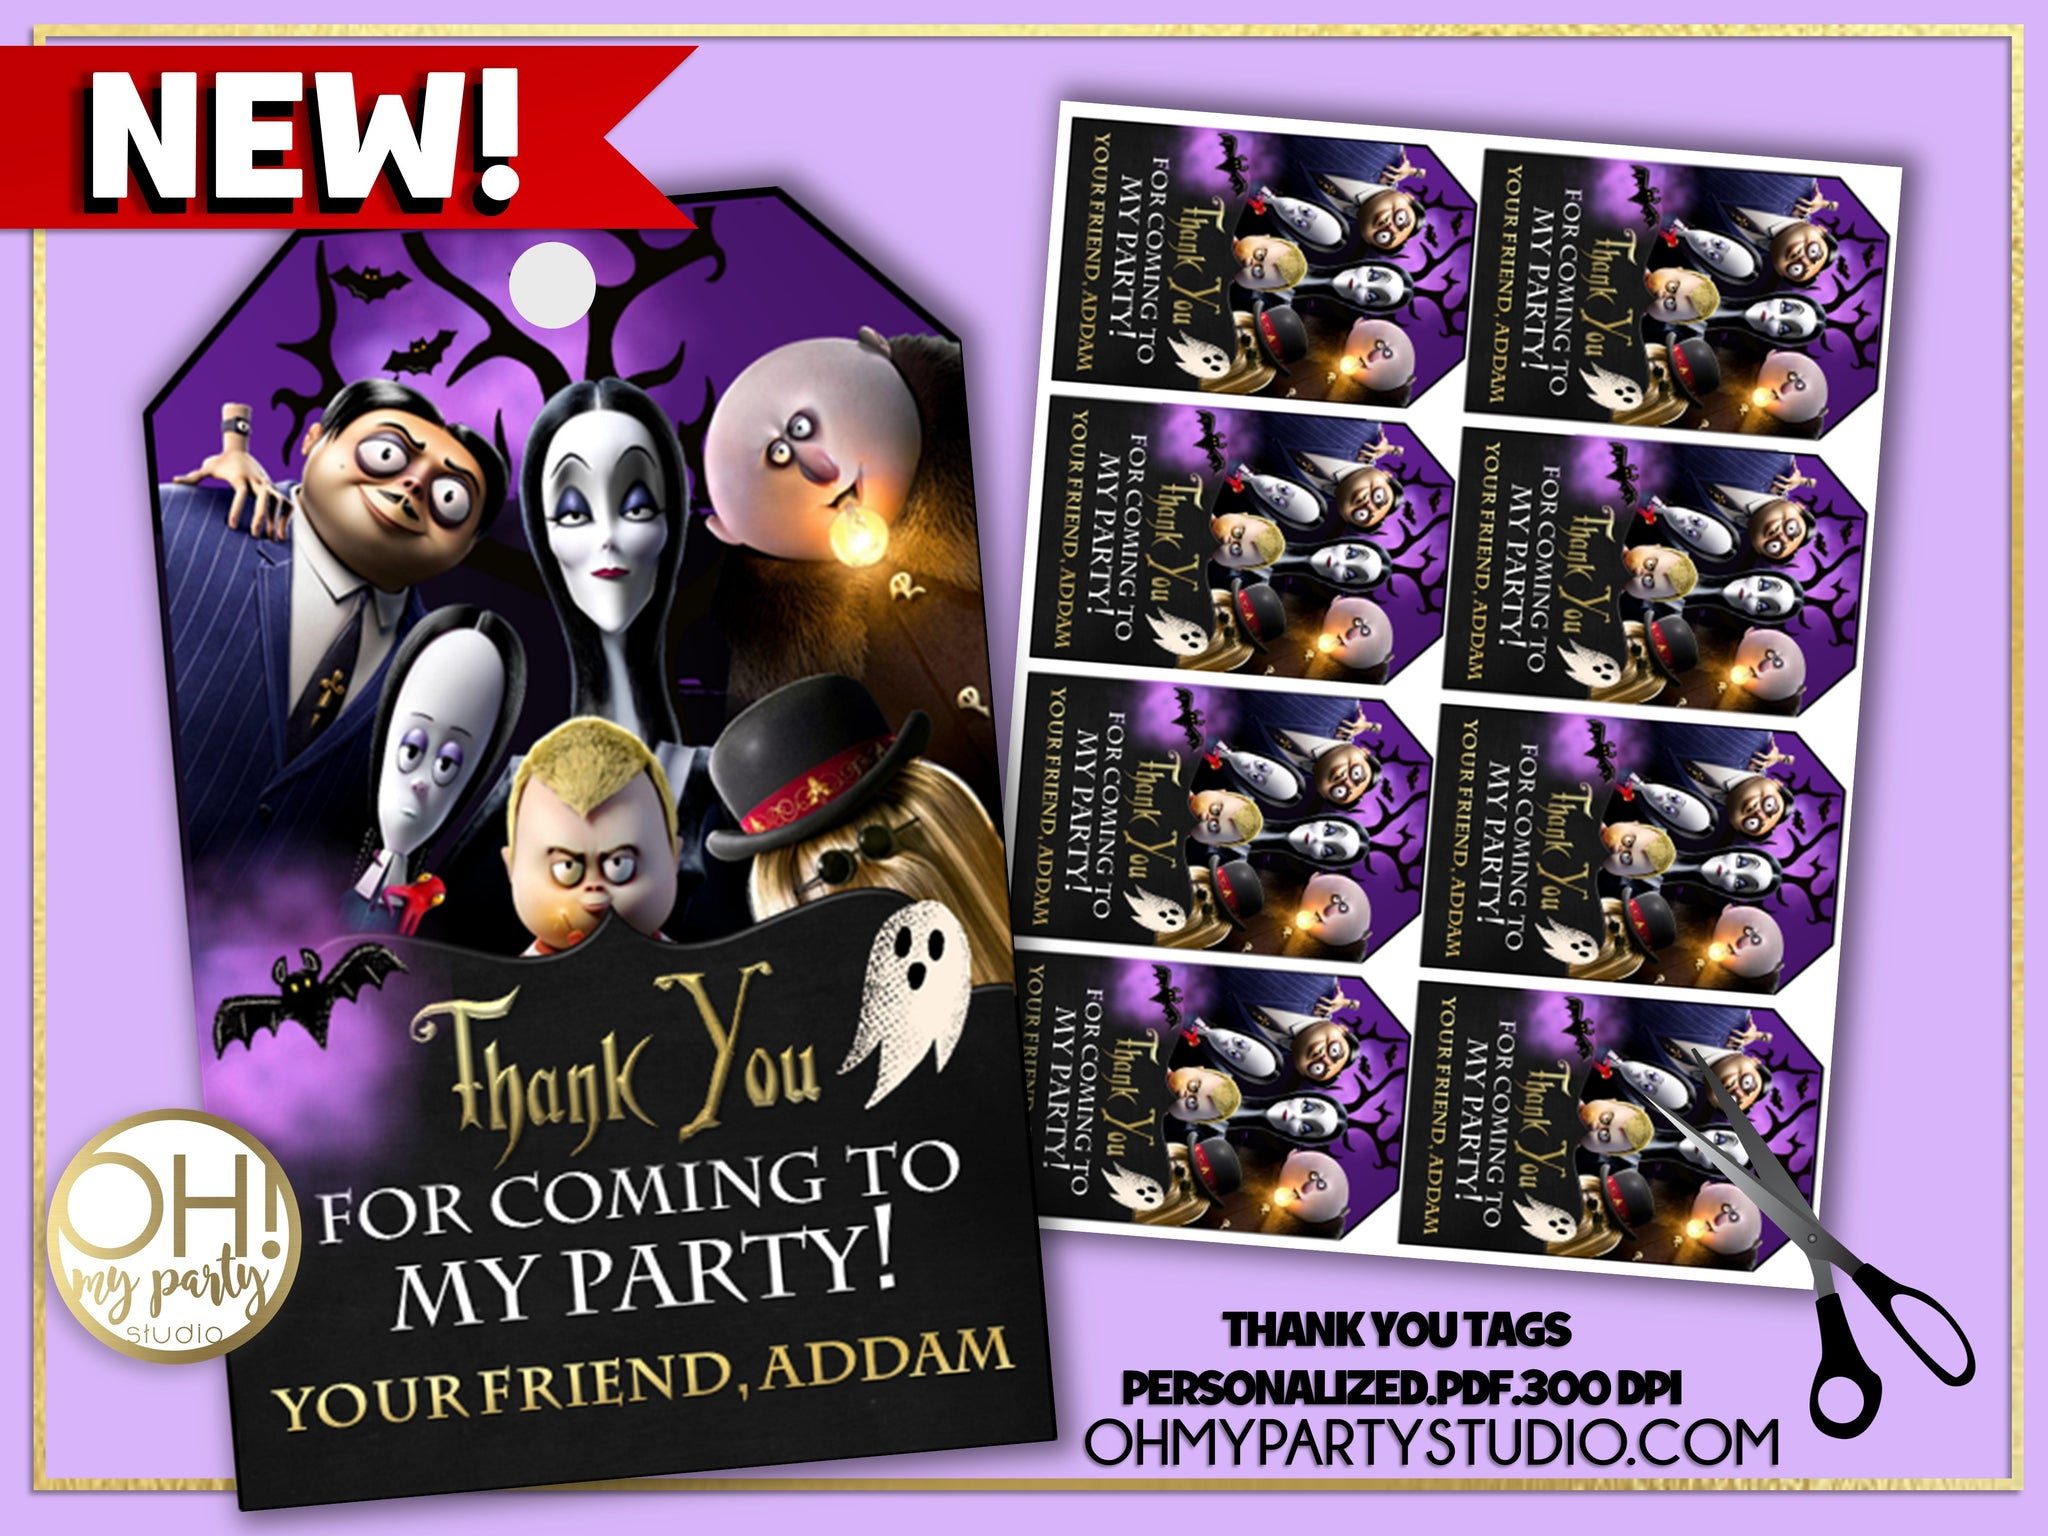 ADDAMS FAMILY THANK YOU TAGS, ADDAMS FAMILY  PARTY, ADDAMS FAMILY  BIRTHDAY, ADDAMS FAMILY PARTY PRINTABLES, ADDAMS FAMILY DECORATIONS, ADDAMS FAMILY  FAVORS, ADDAMS FAMILY PARTY SUPPLIES, ADDAMS FAMILY  PARTY DECORATIONS, ADDAMS FAMILY PARTY IDEAS, ADDAMS FAMILY BIRTHDAY PARTY, ADDAMS FAMILY TAGS